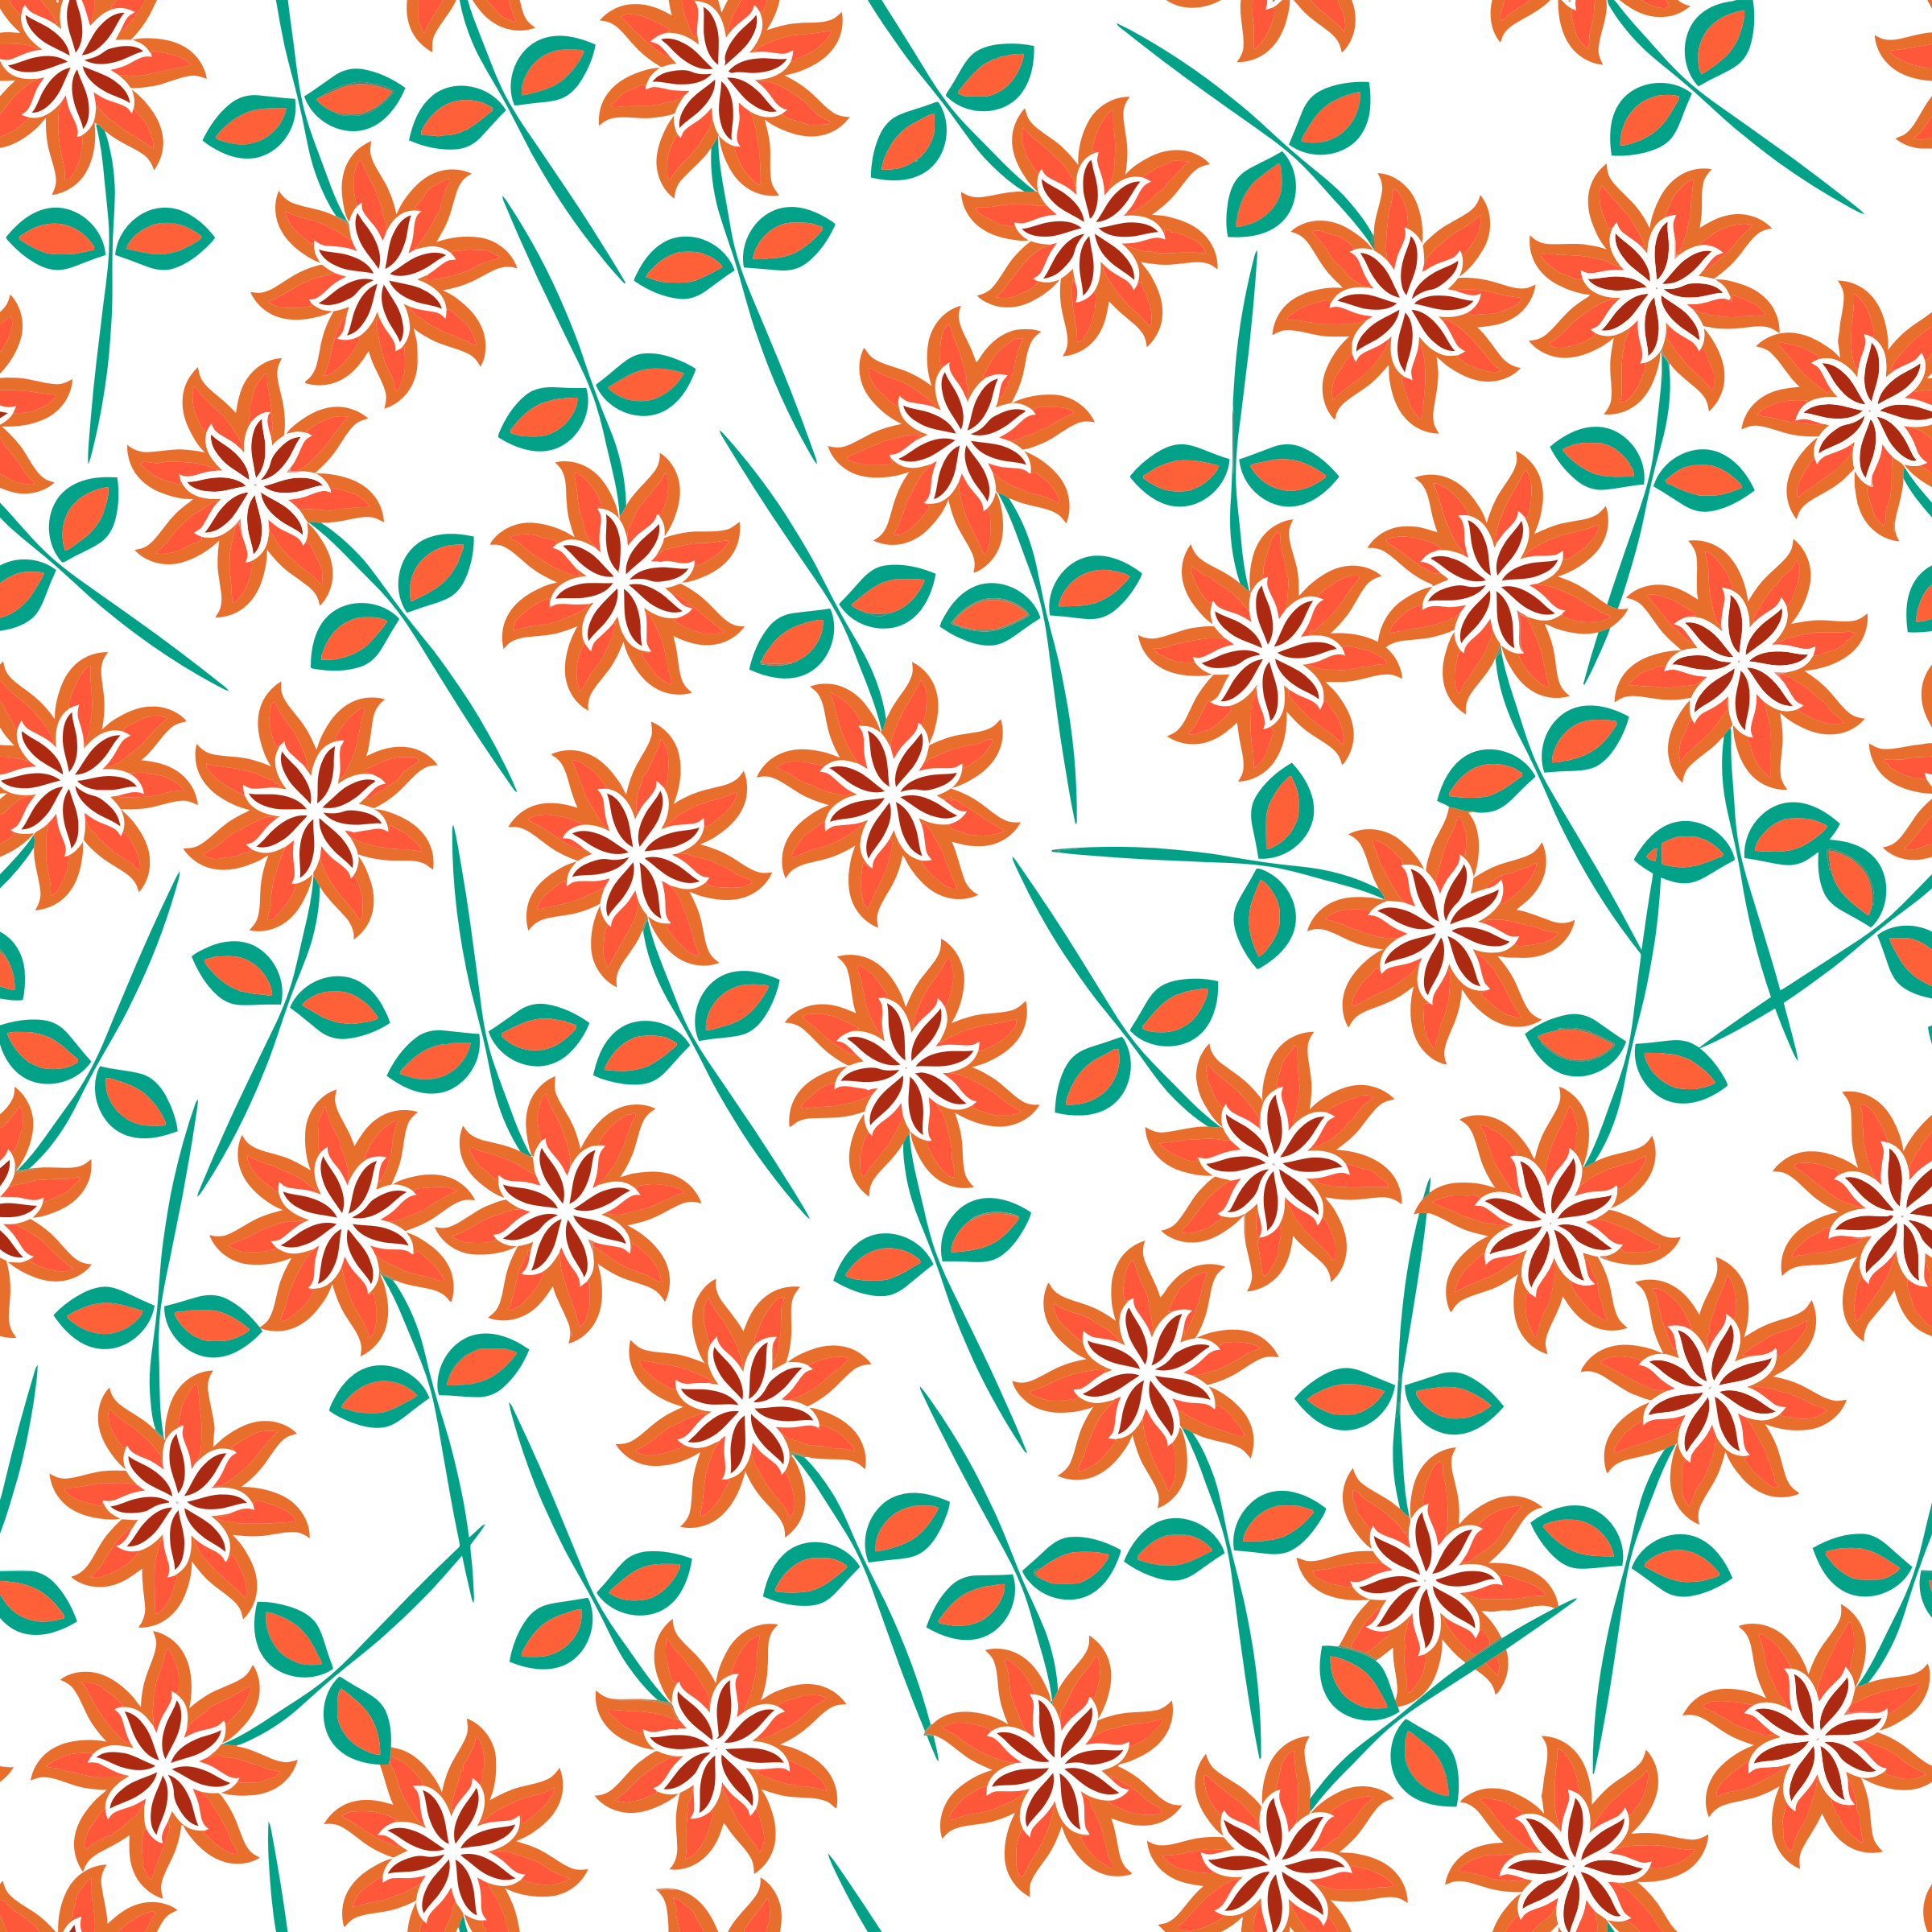 Floral Seamless Pattern 7 by GDJ